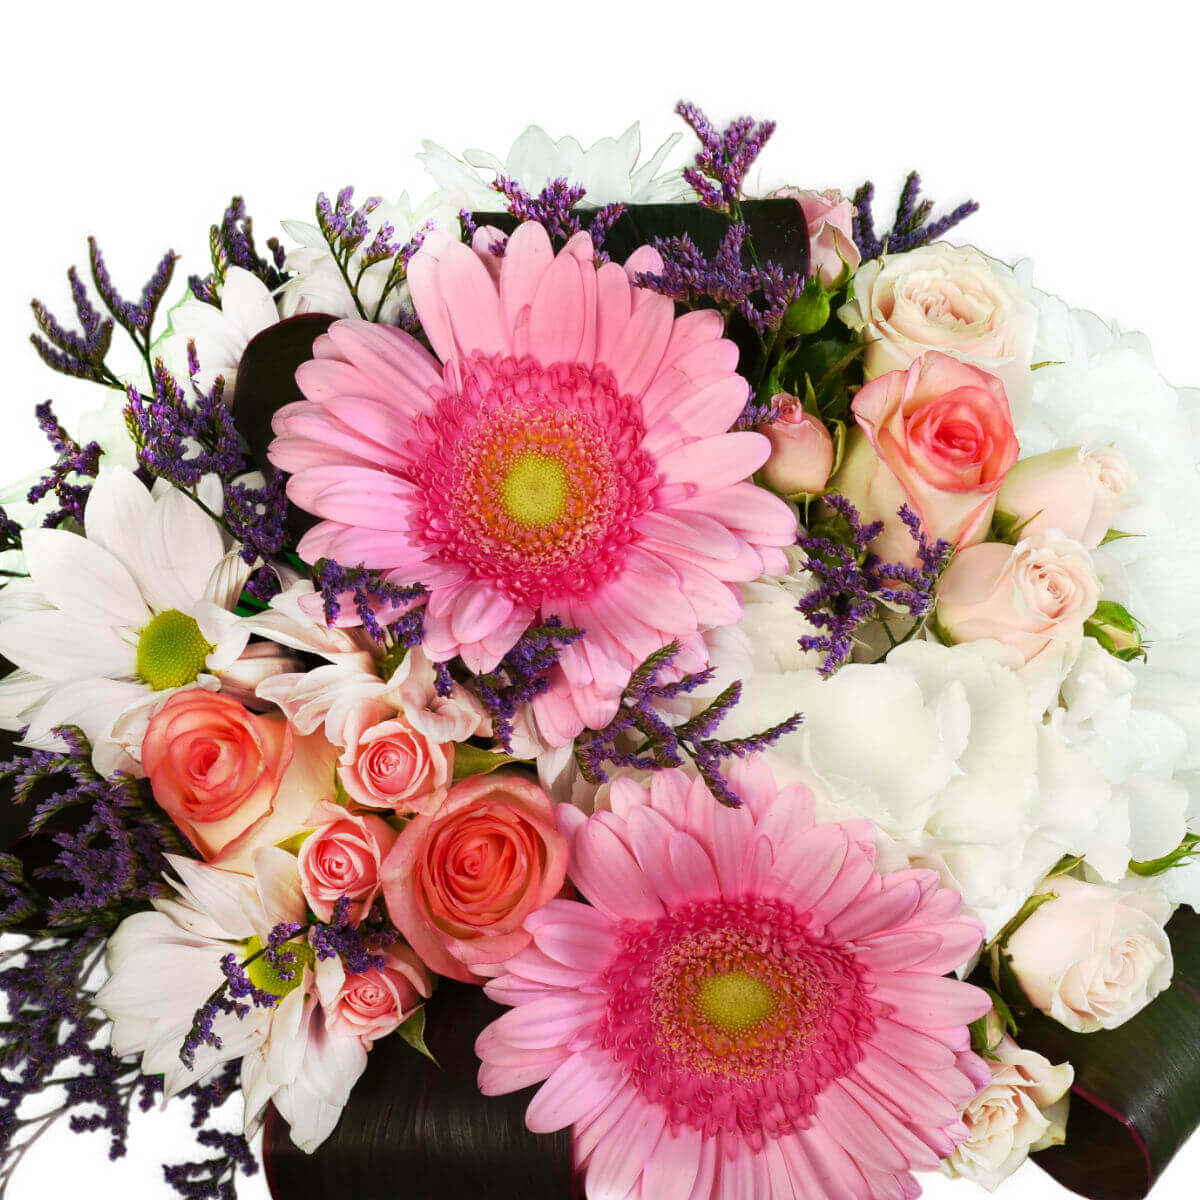 Gorgeous and elegant Birthday Flower Delivery | Vancouver & Burnaby Florist | Adele Rae